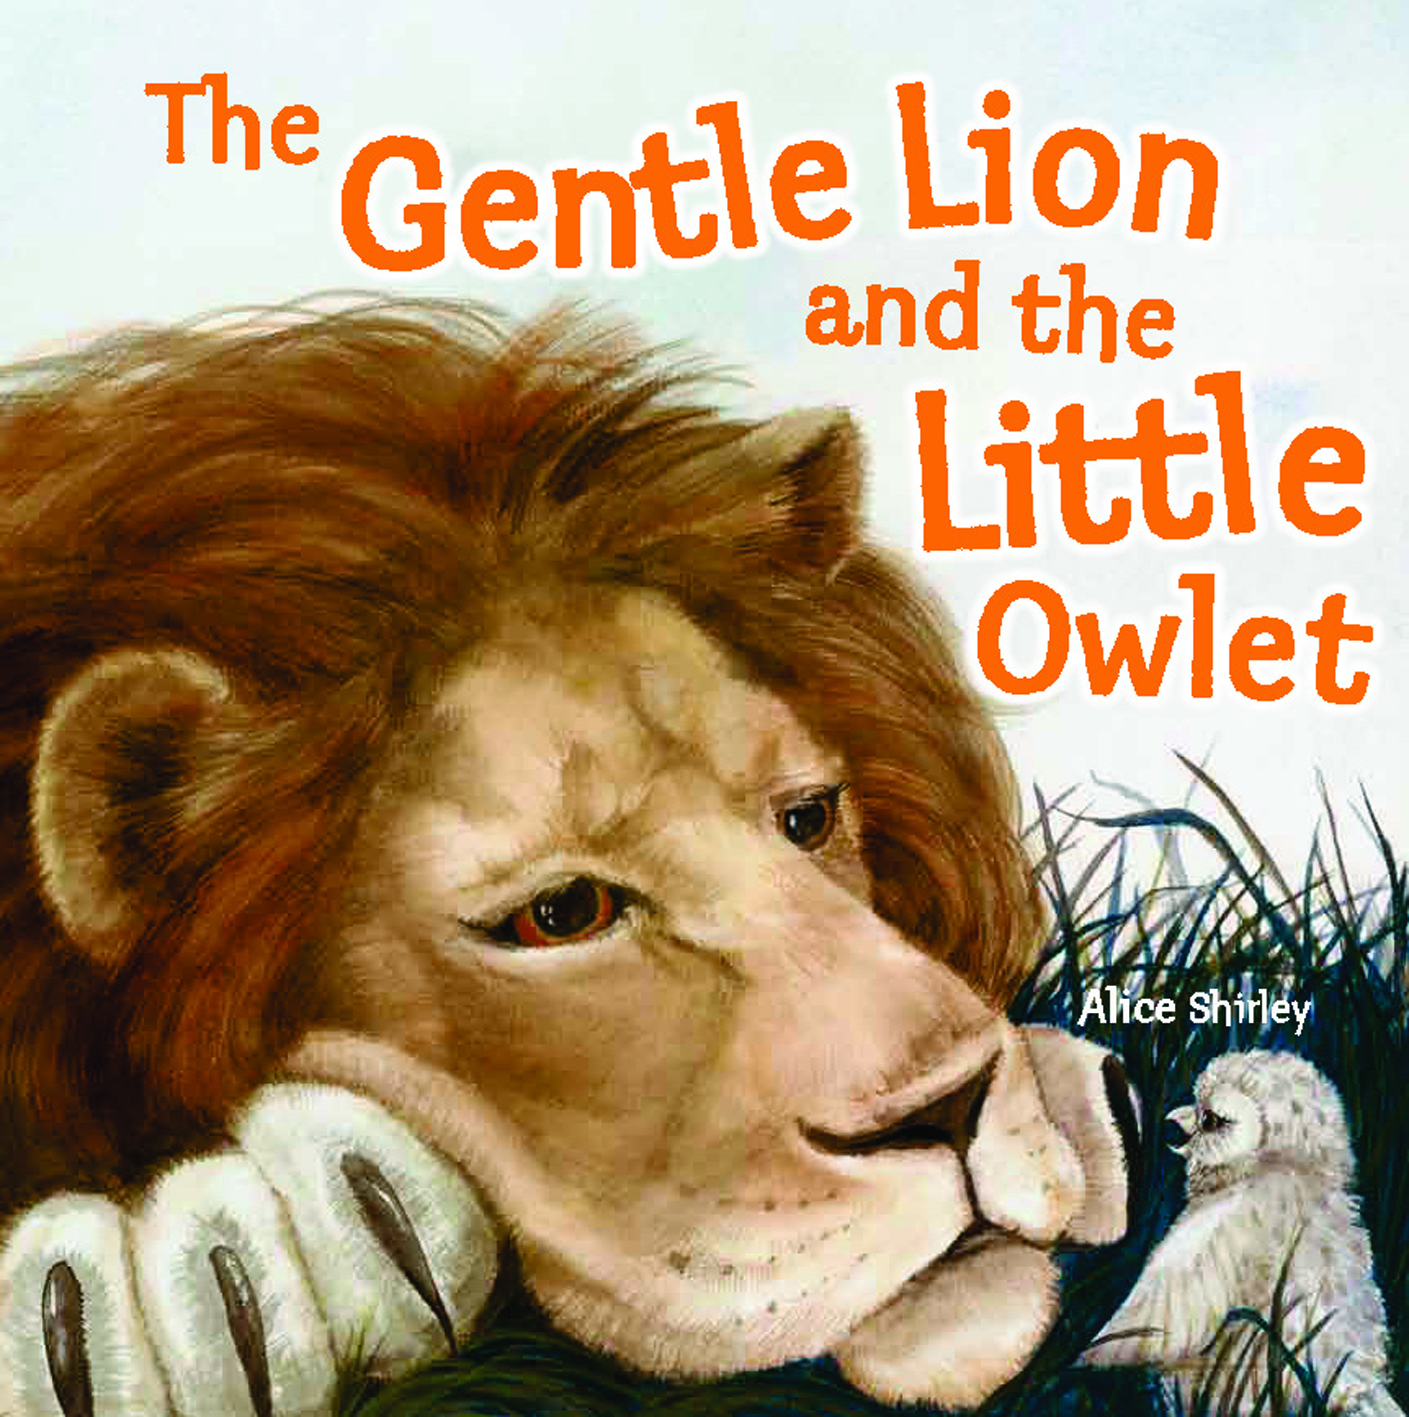 The Gentle Lion and Little Owlet